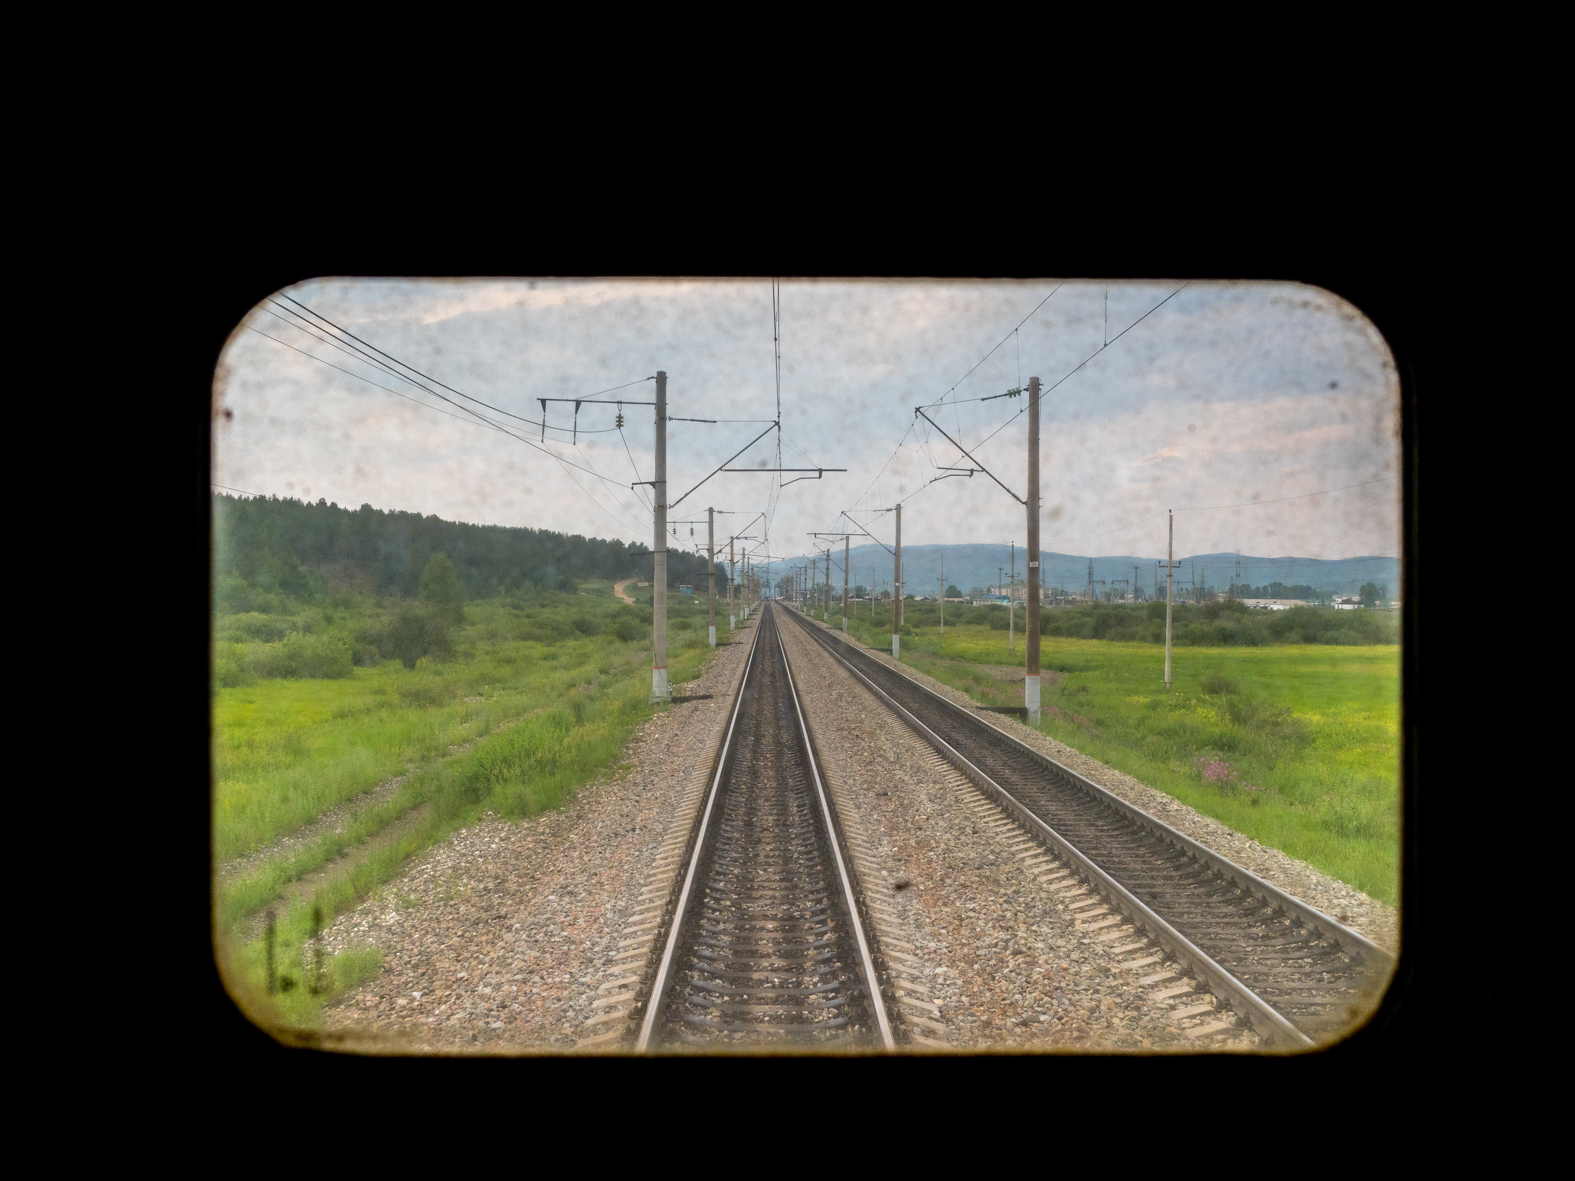 A view from back of the Trans-Siberian Railway from Moscow-Vladivostok. Spanning a length of 9,289km, it's the longest uninterrupted single country train journey in the world. It has connected Moscow with Vladivostok since 1916, and is still being expanded. It was built between 1891 and 1916 under the supervision of Russian government ministers personally appointed by Tsar Alexander III and his son, the Tsarevich Nicholas (later Tsar Nicholas II).